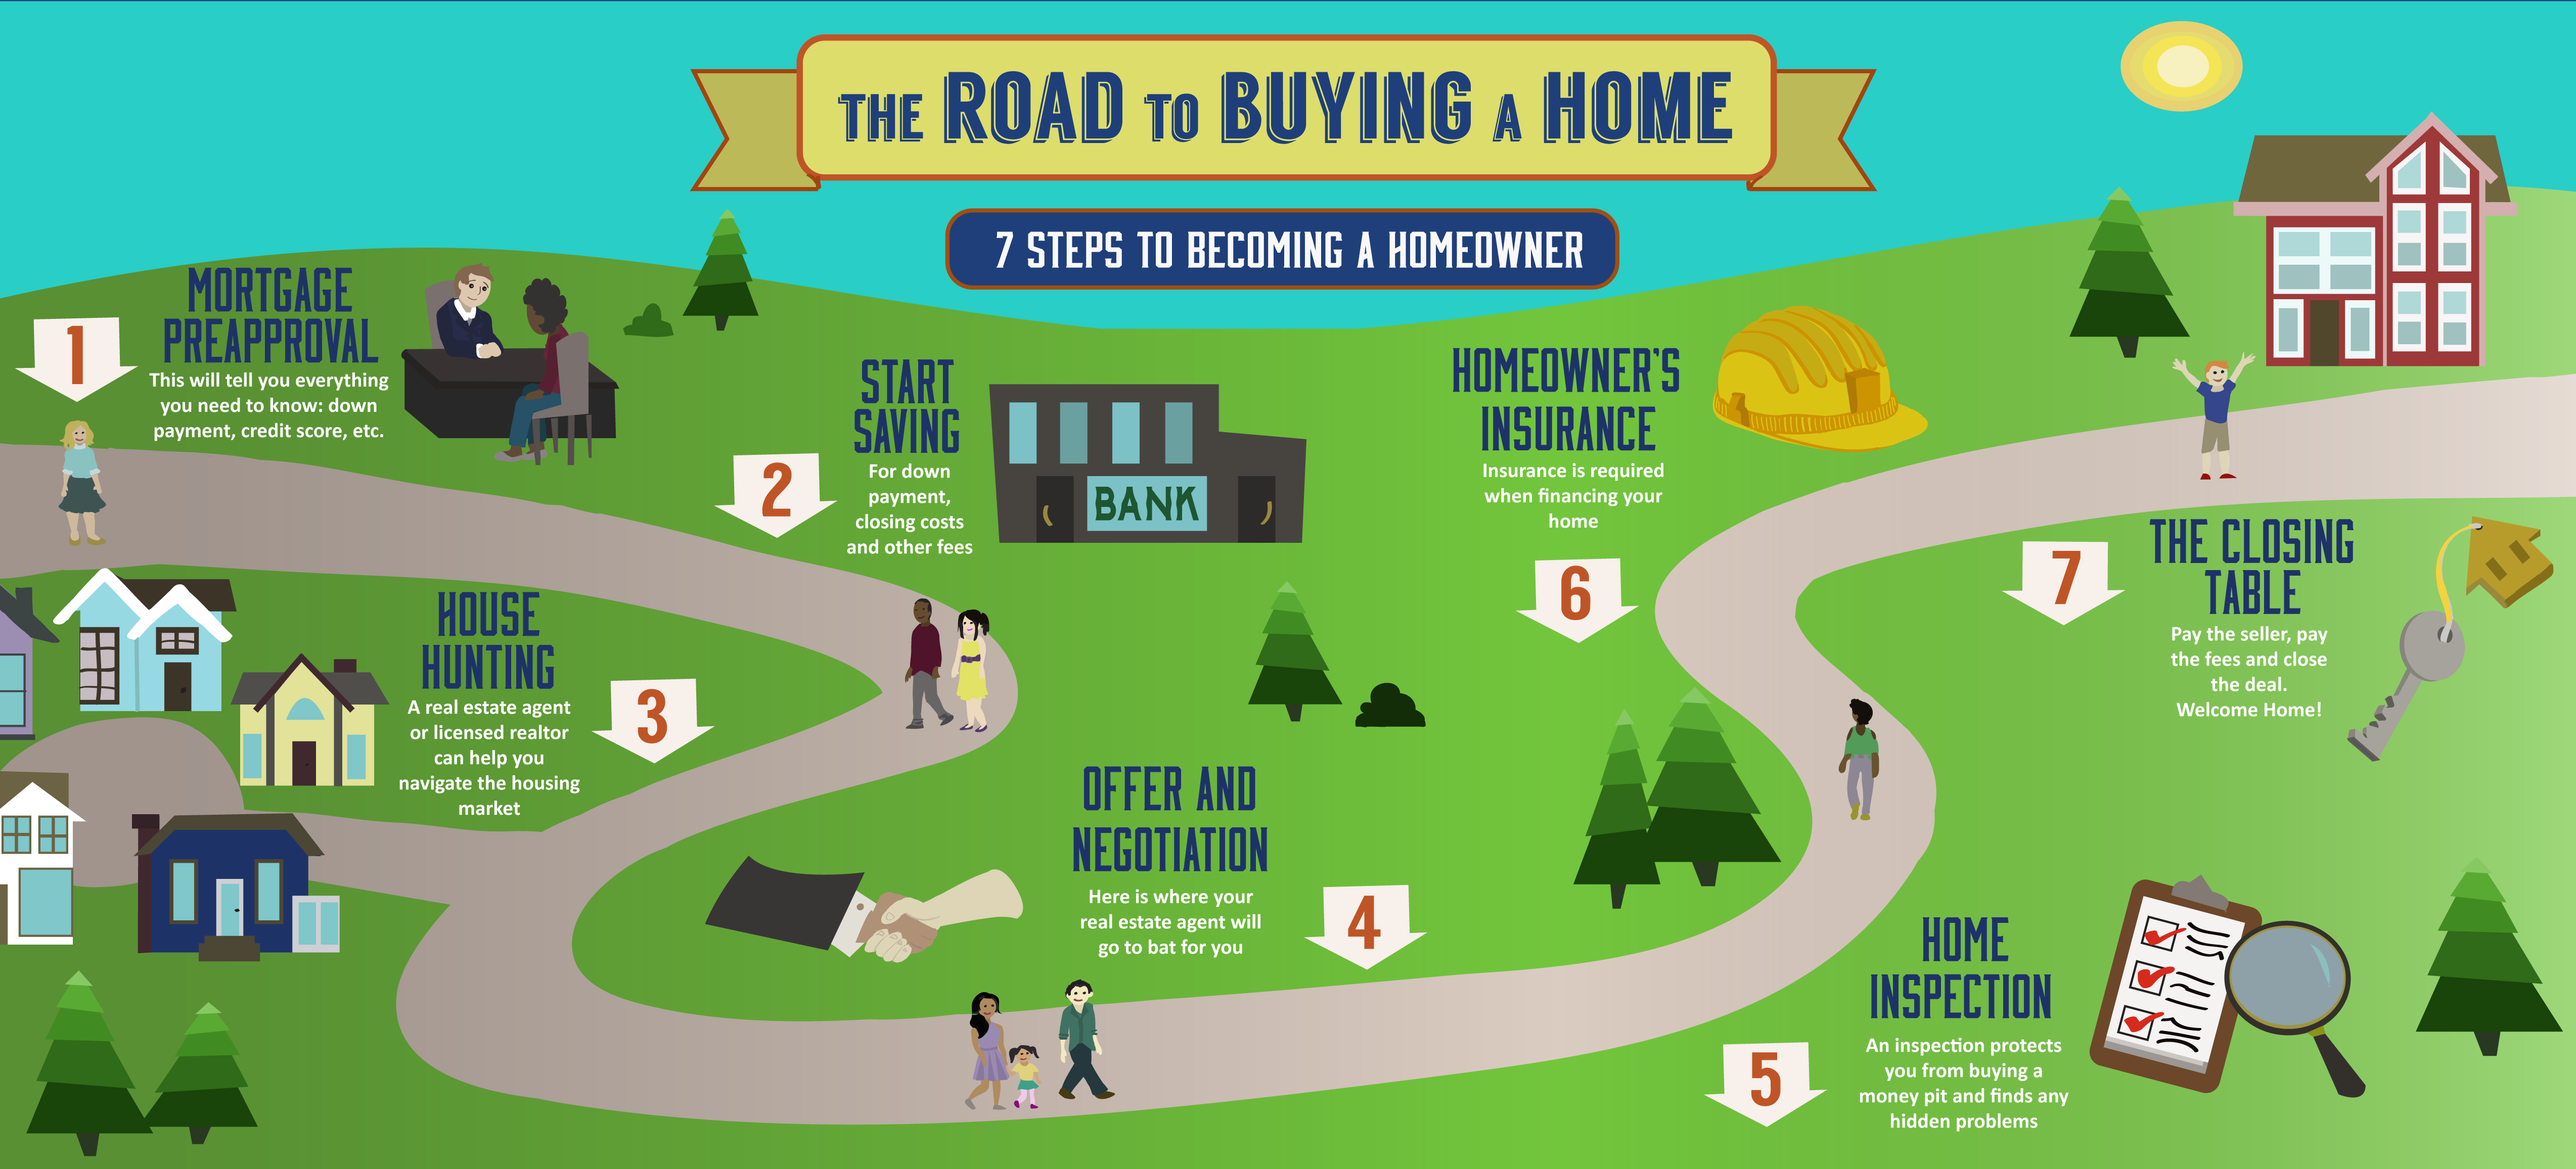 First Time Buyer What You Need To Know Before Buying A House Buying Your First Home Home Buying Home Buying Process